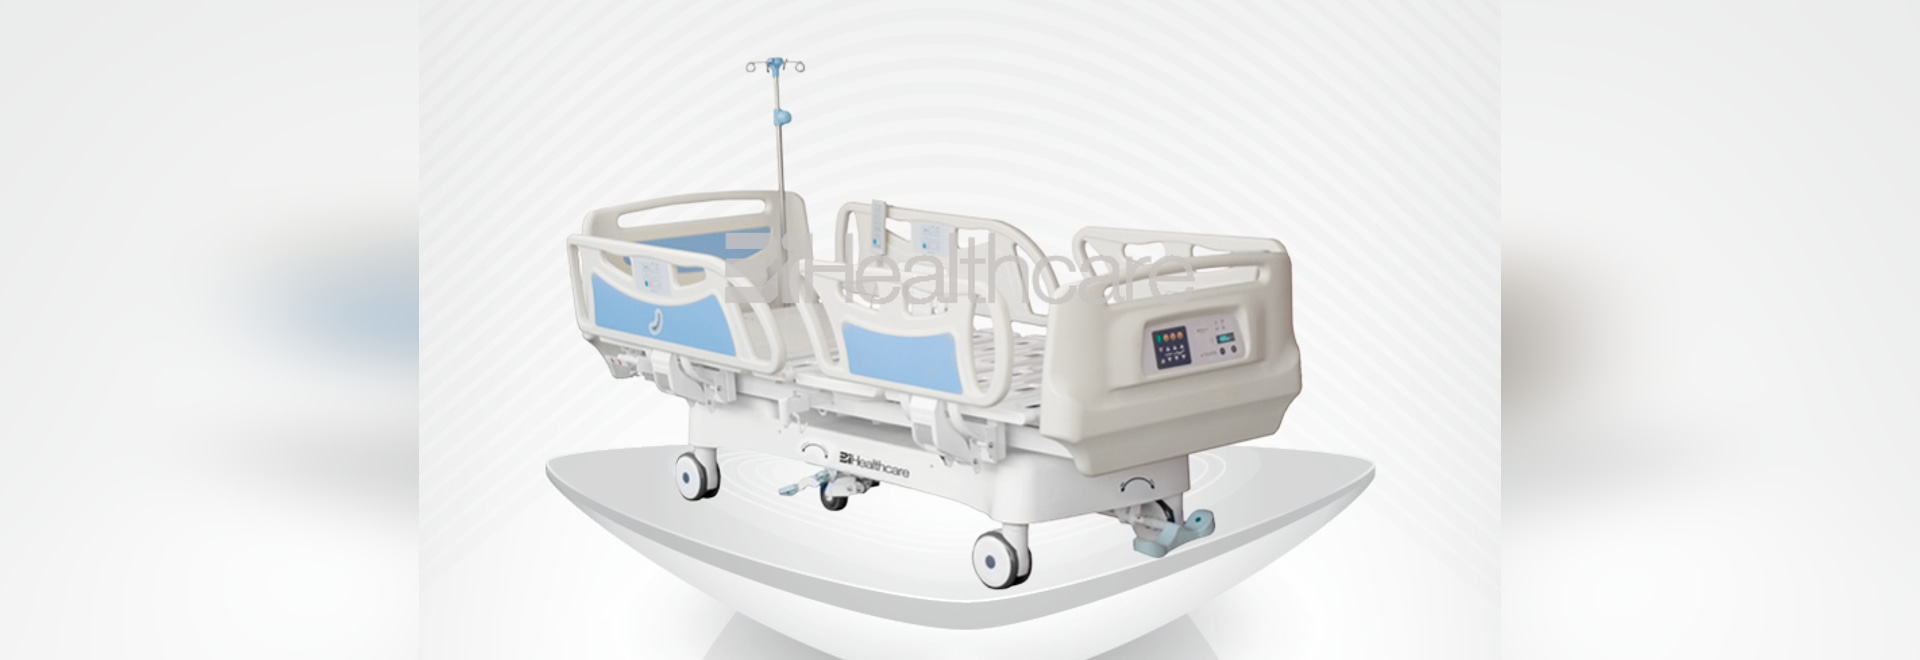 2017 New ICU hospital bed-Alphain ICU bed manufactured by BiHealthcare